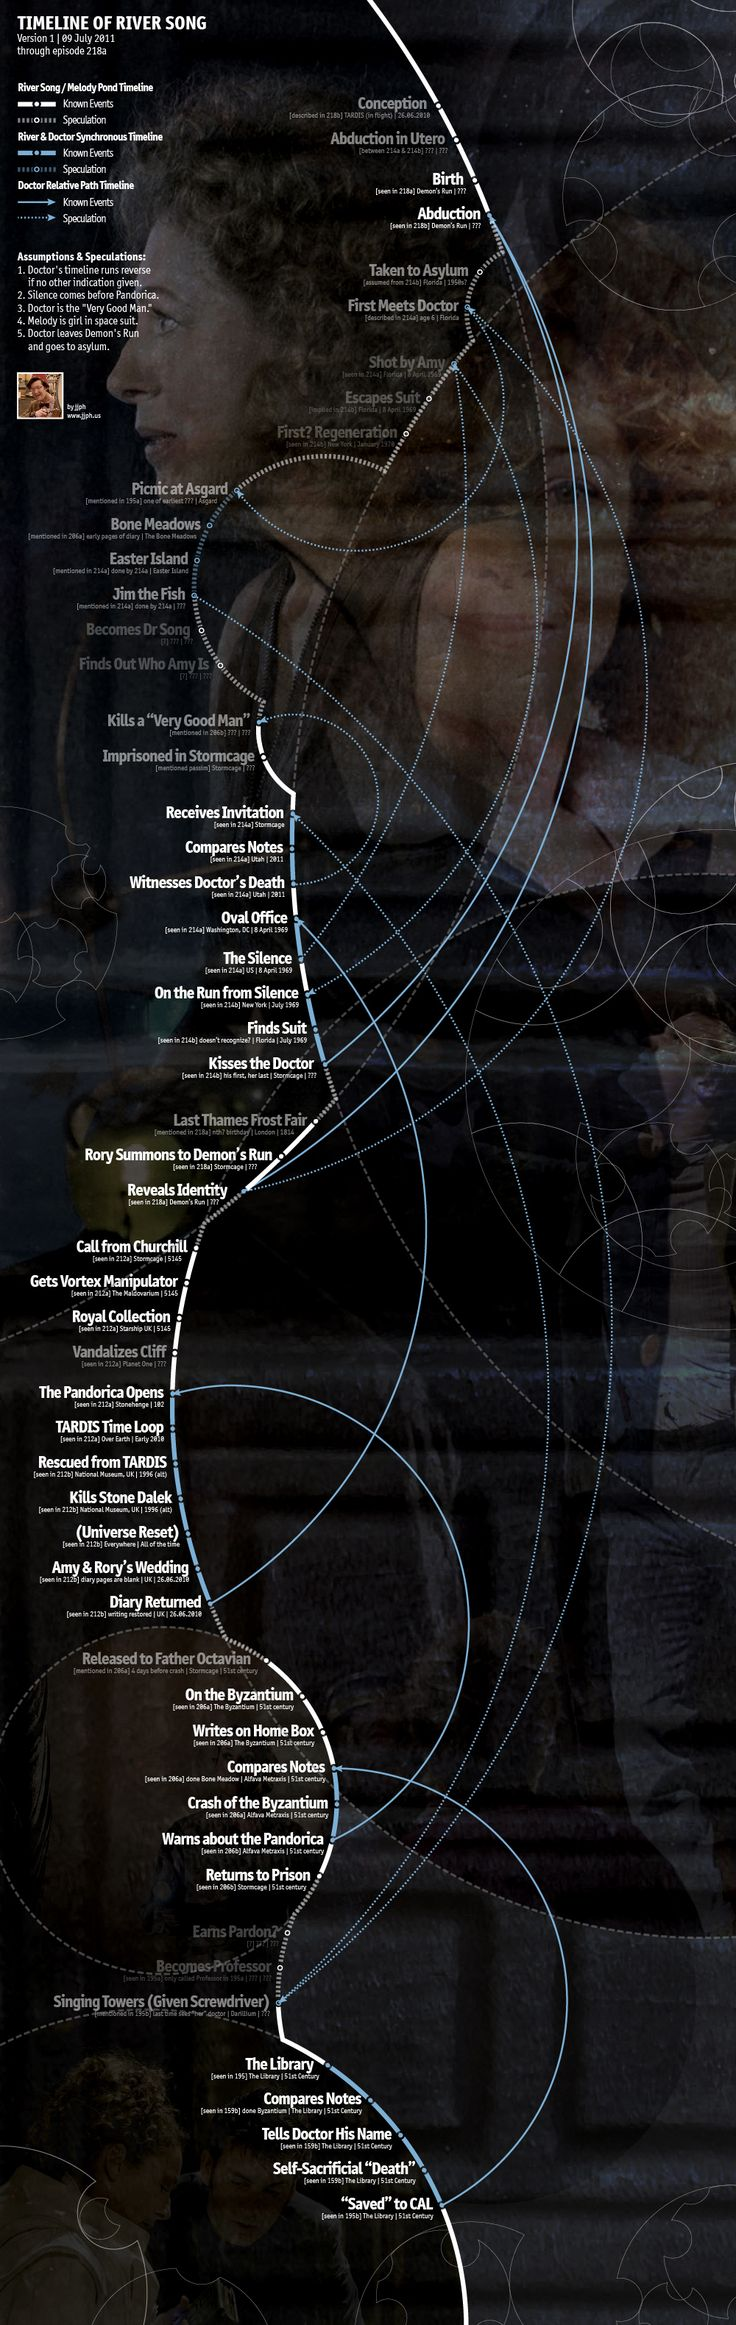 Más tamaños | River Song Timeline Infographic | Flickr: ¡Intercambio de fotos!